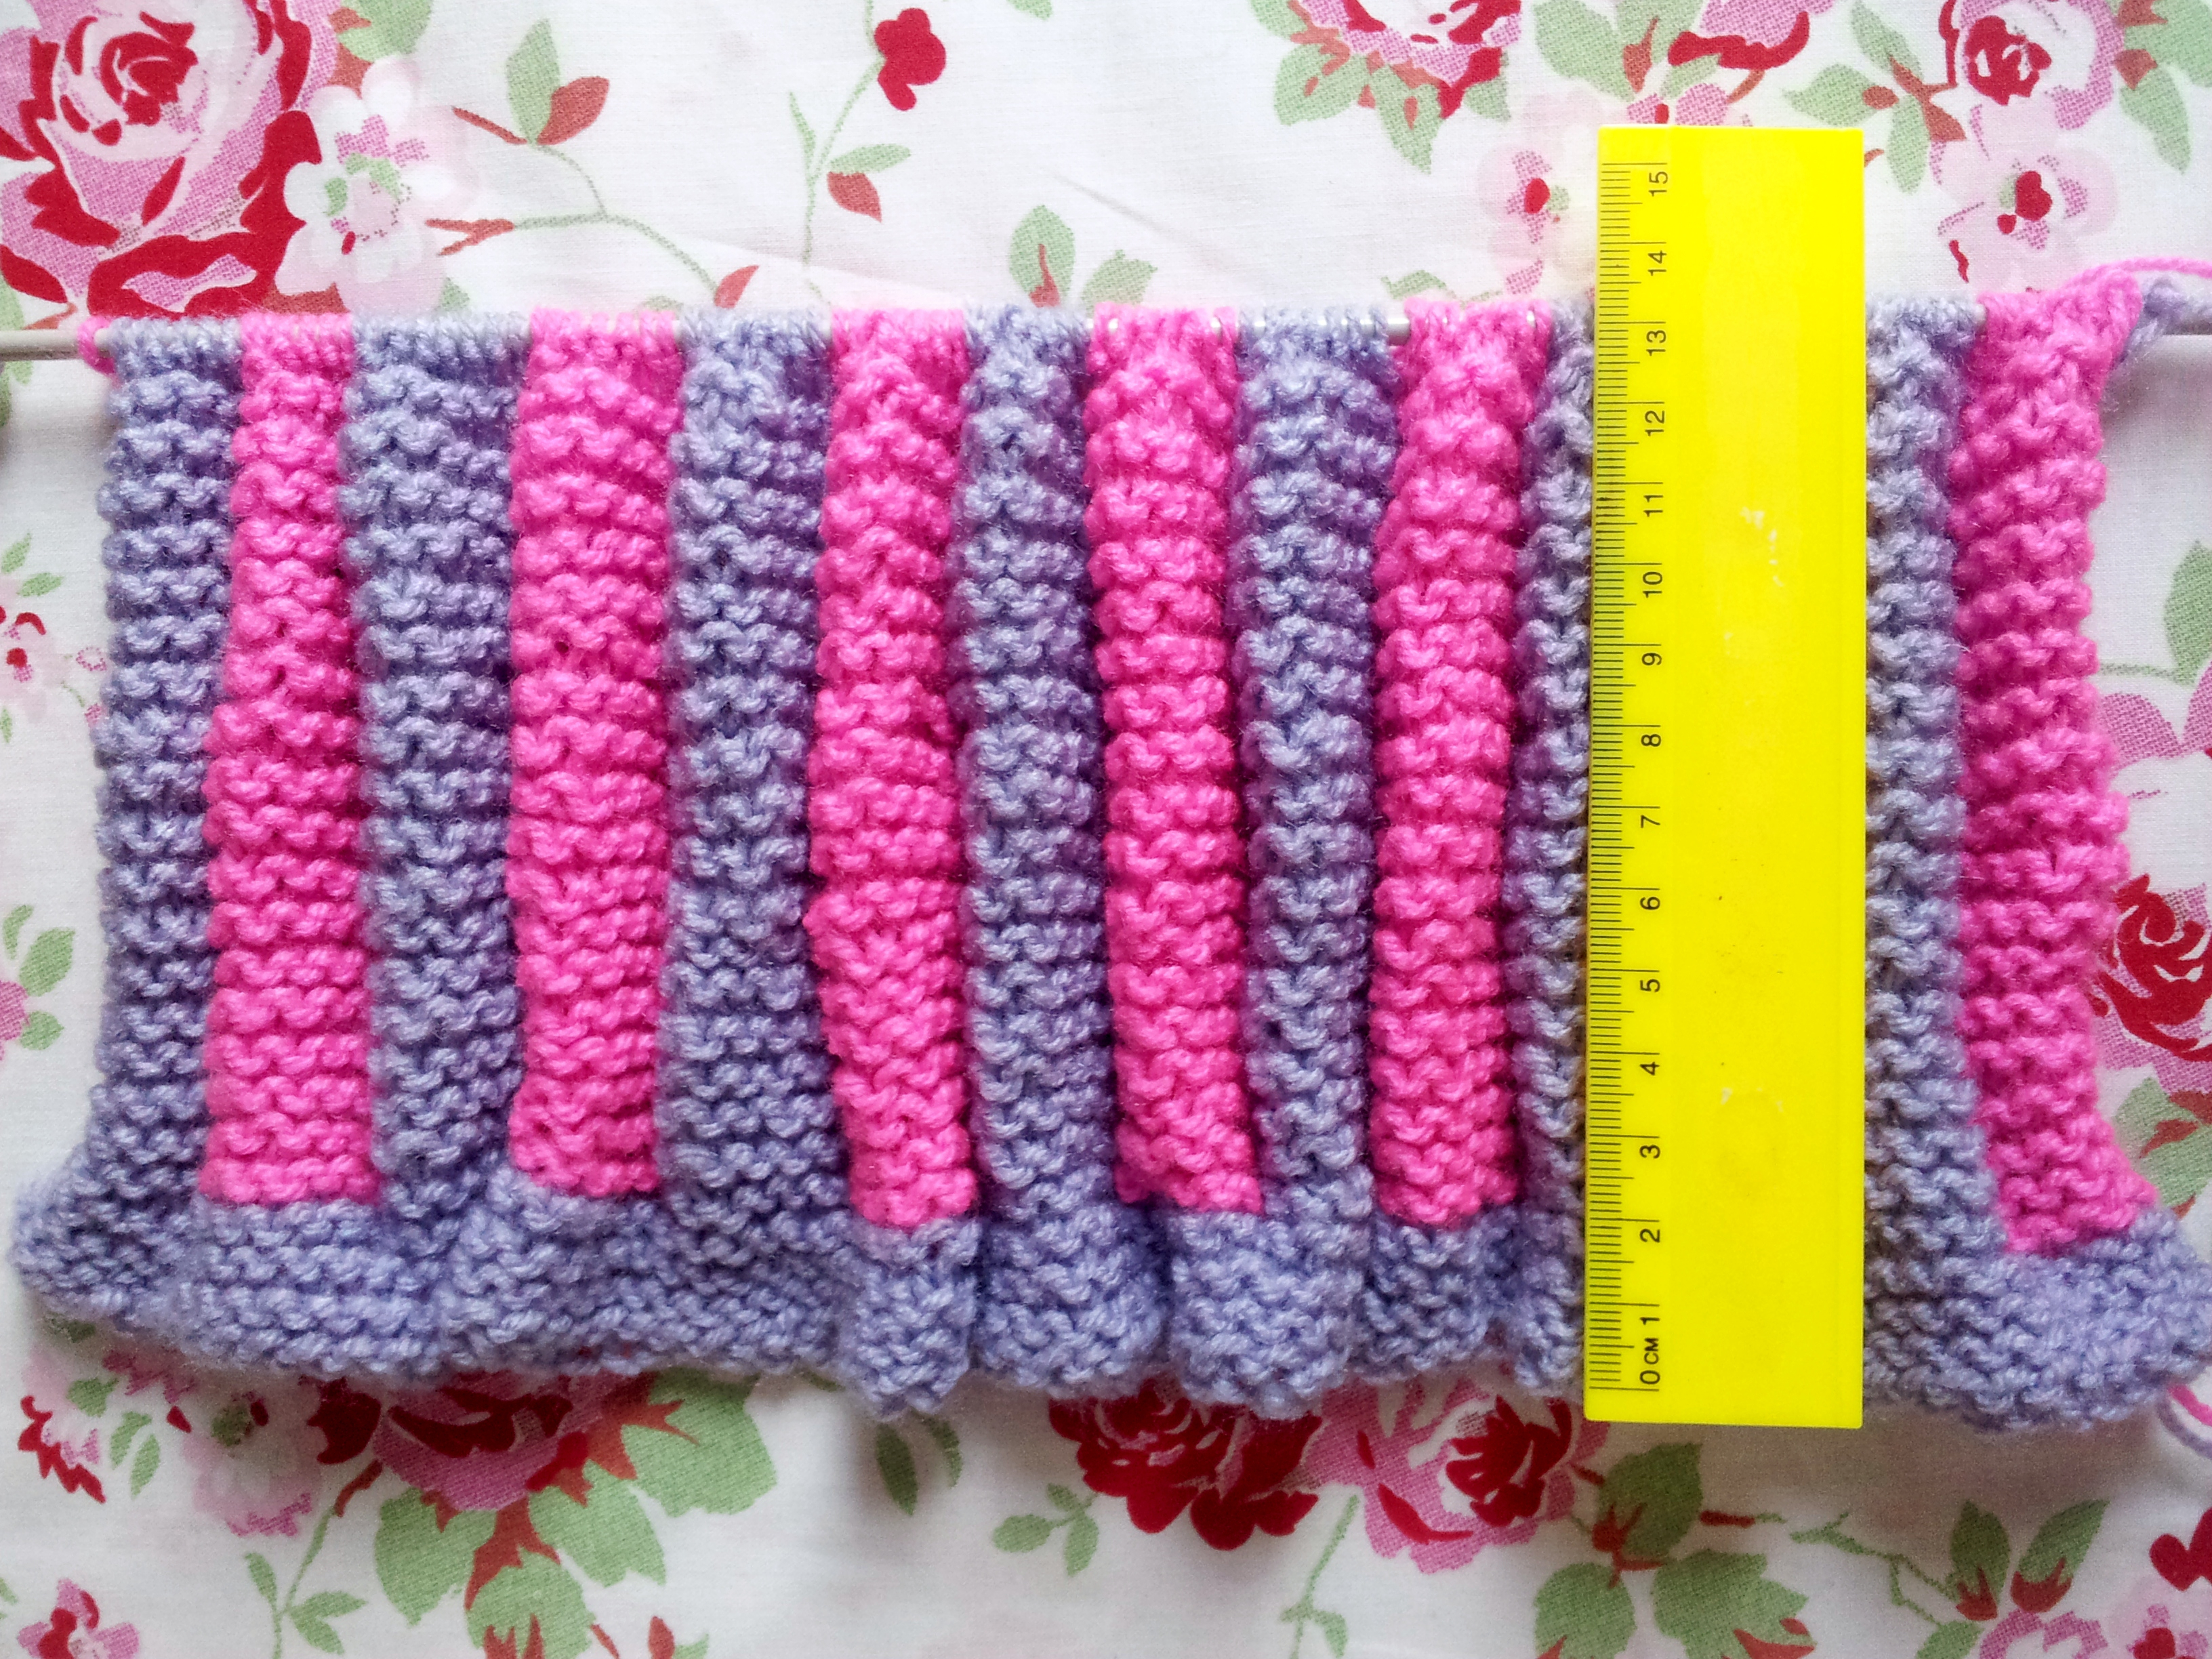 Patterns For Knitted Tea Cosies My Vintage Style Knitted Tea Cosy Cozy Thestitchsharer